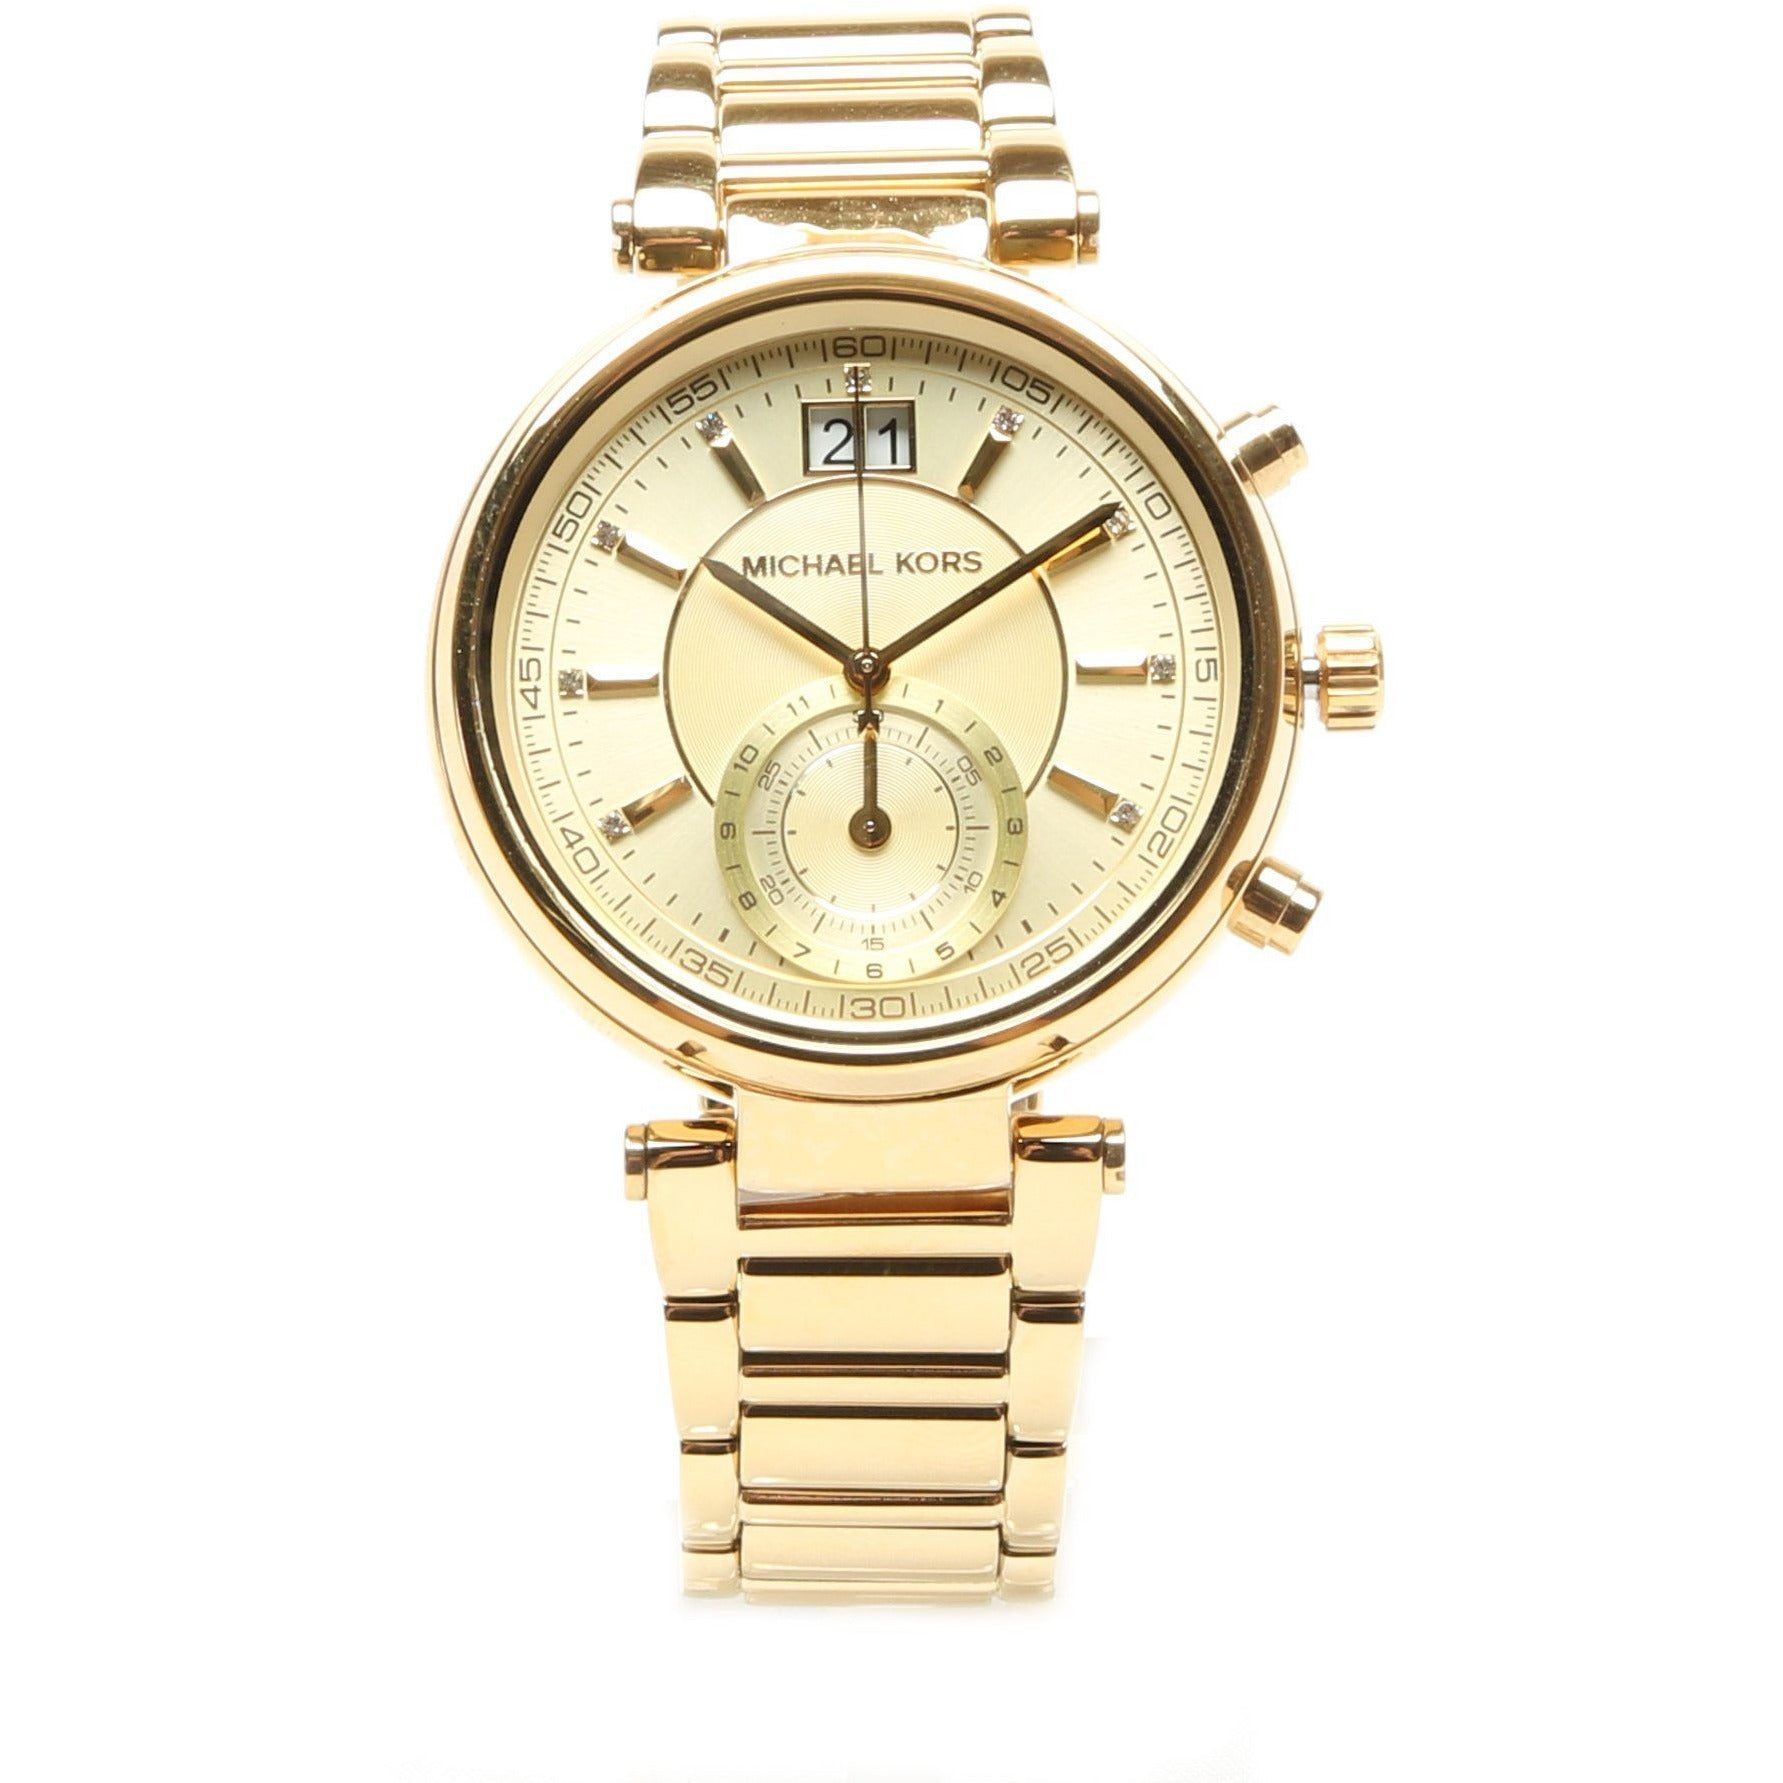 Michael Kors Mk6362 WATCH Michael Kors